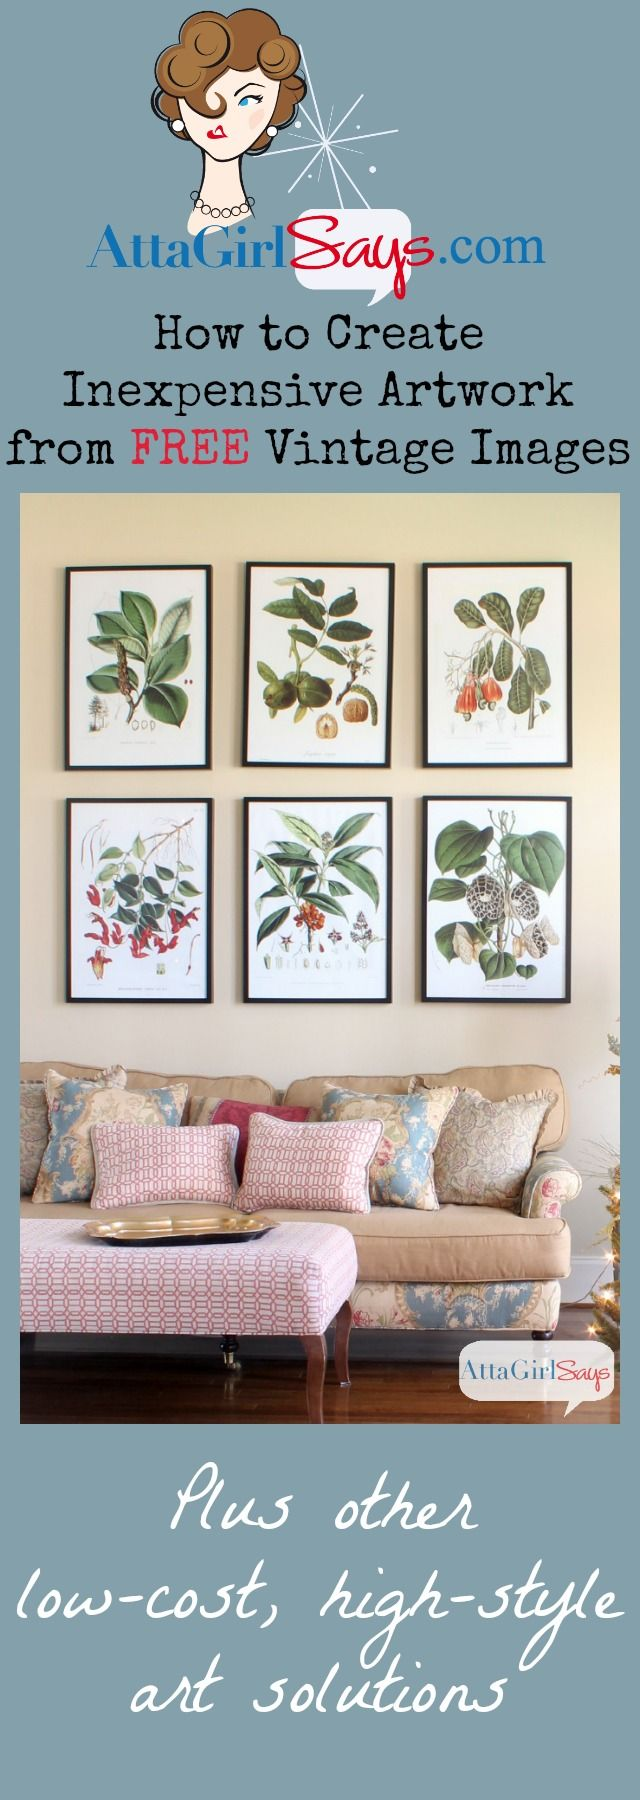 Inexpensive Artwork 149 best images about printables! on pinterest